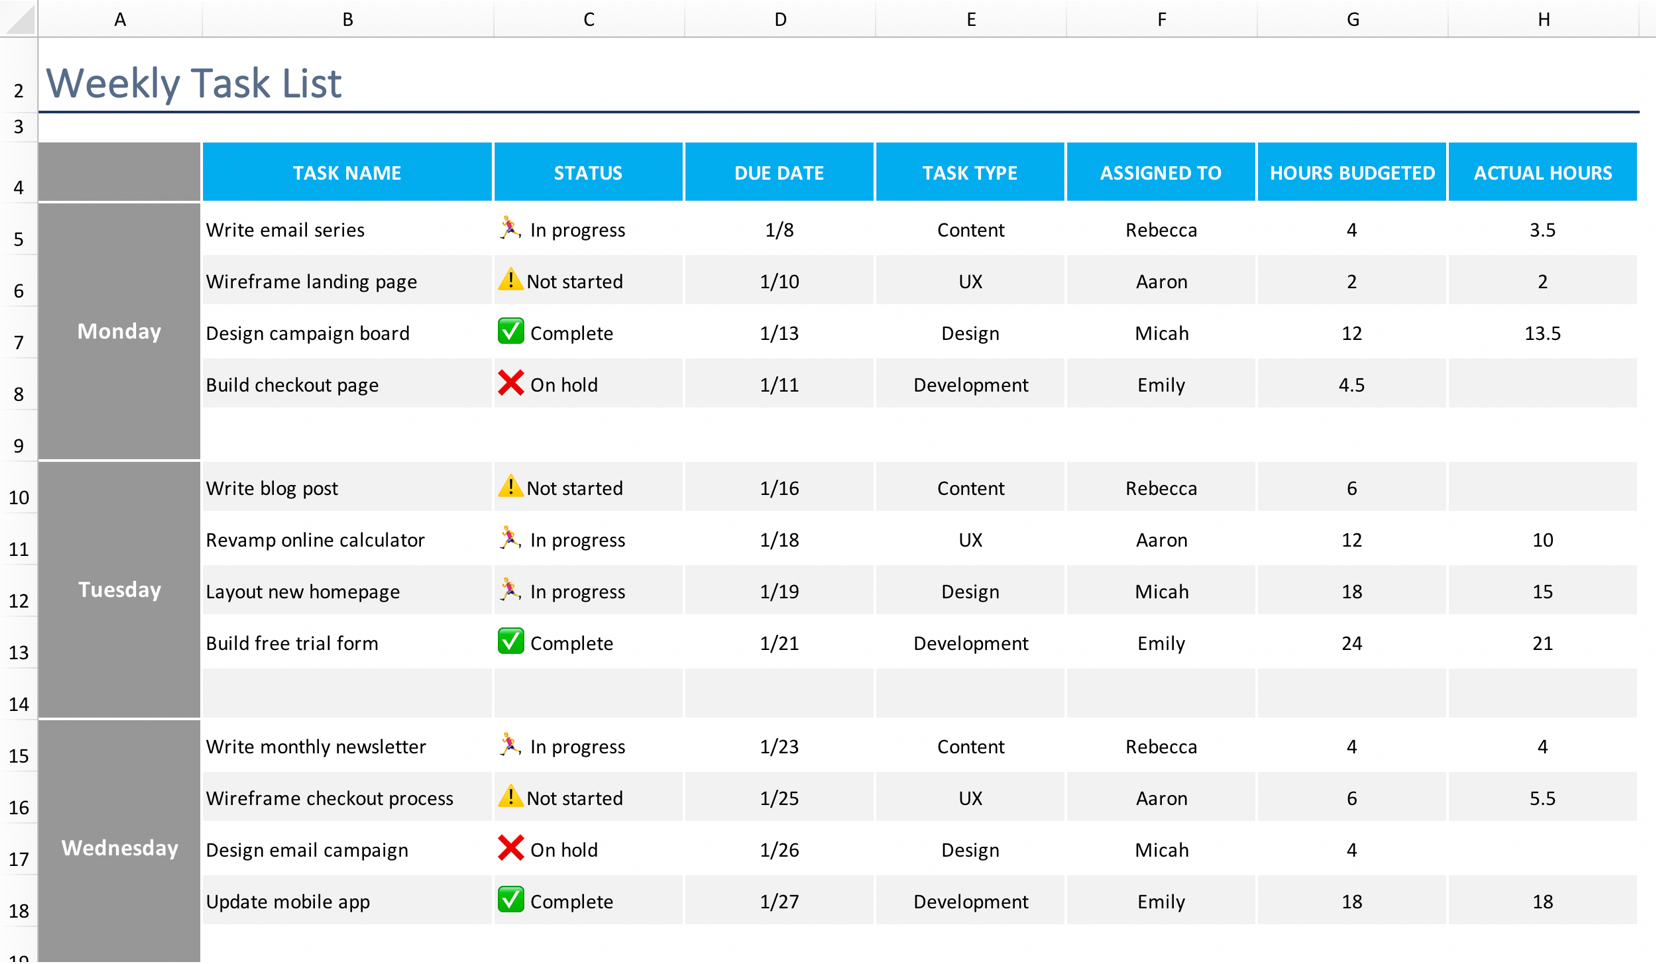 Full Size of Performance Using Spreadsheets Quote Spreadsheet Restaurant Stock Quotes Real Template Excel Task Tracker